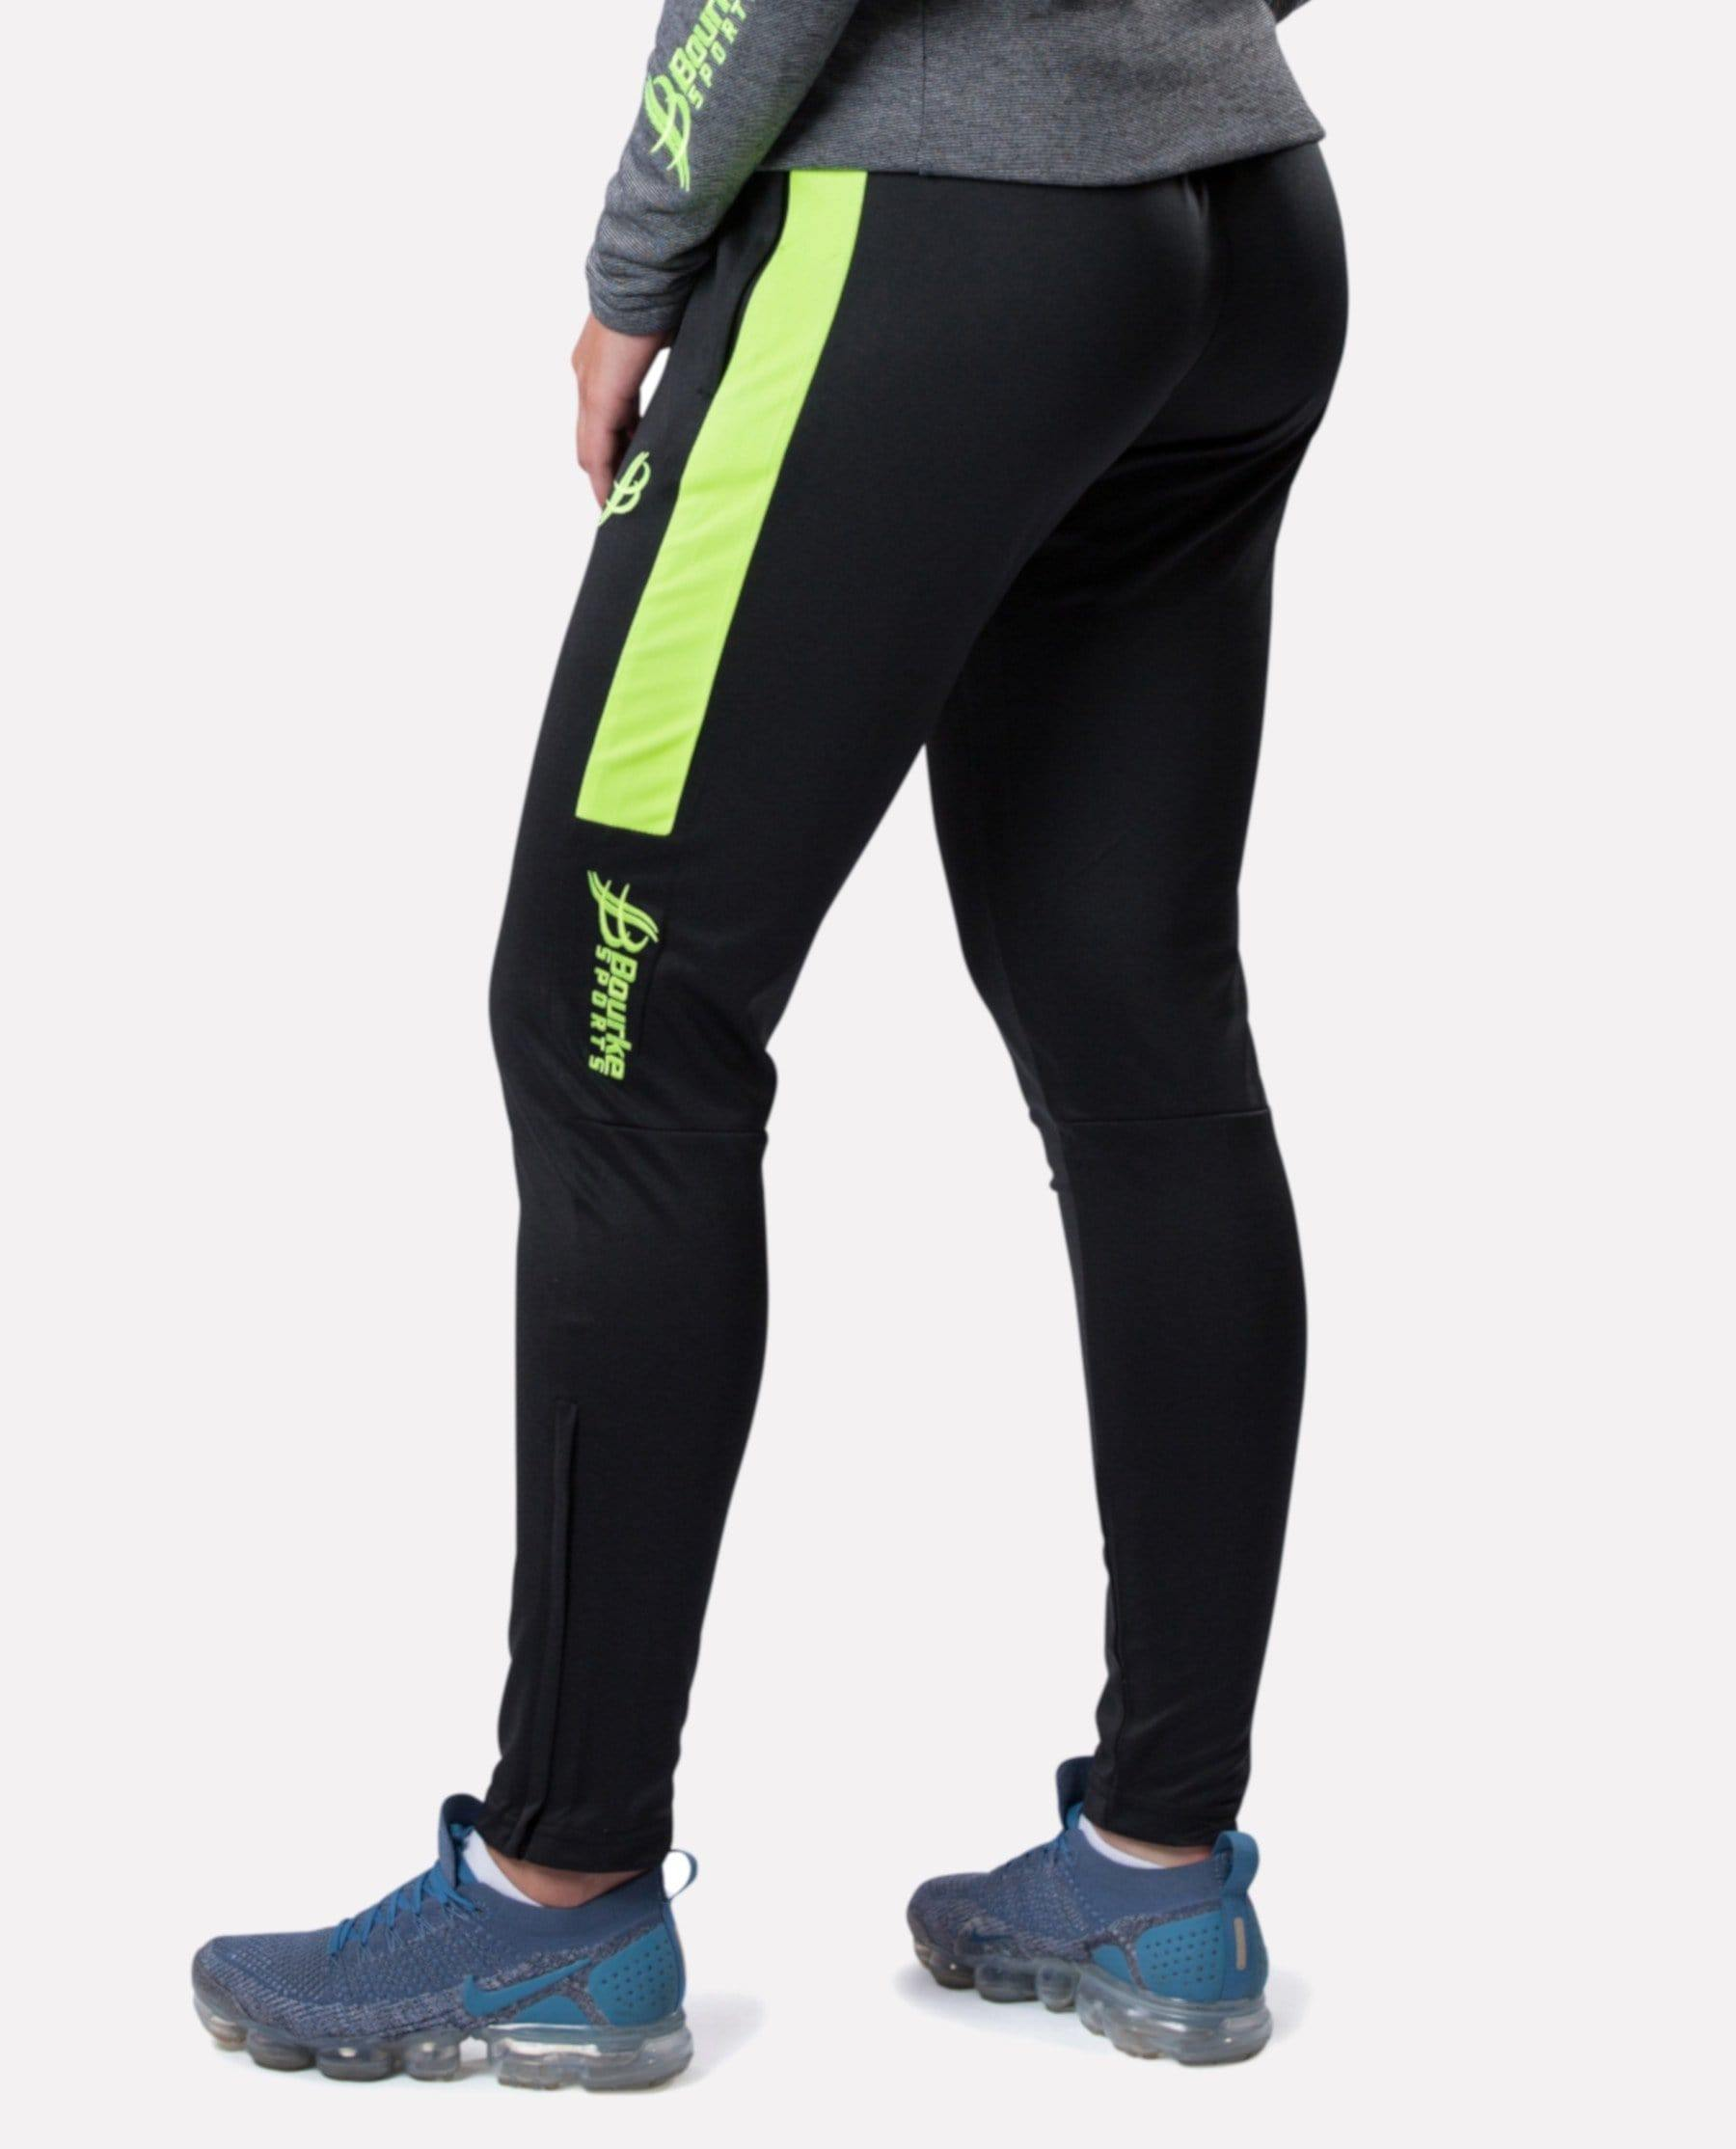 ALPHA Adult Skinny Pants (Black/Luminous) - Bourke Sports Limited